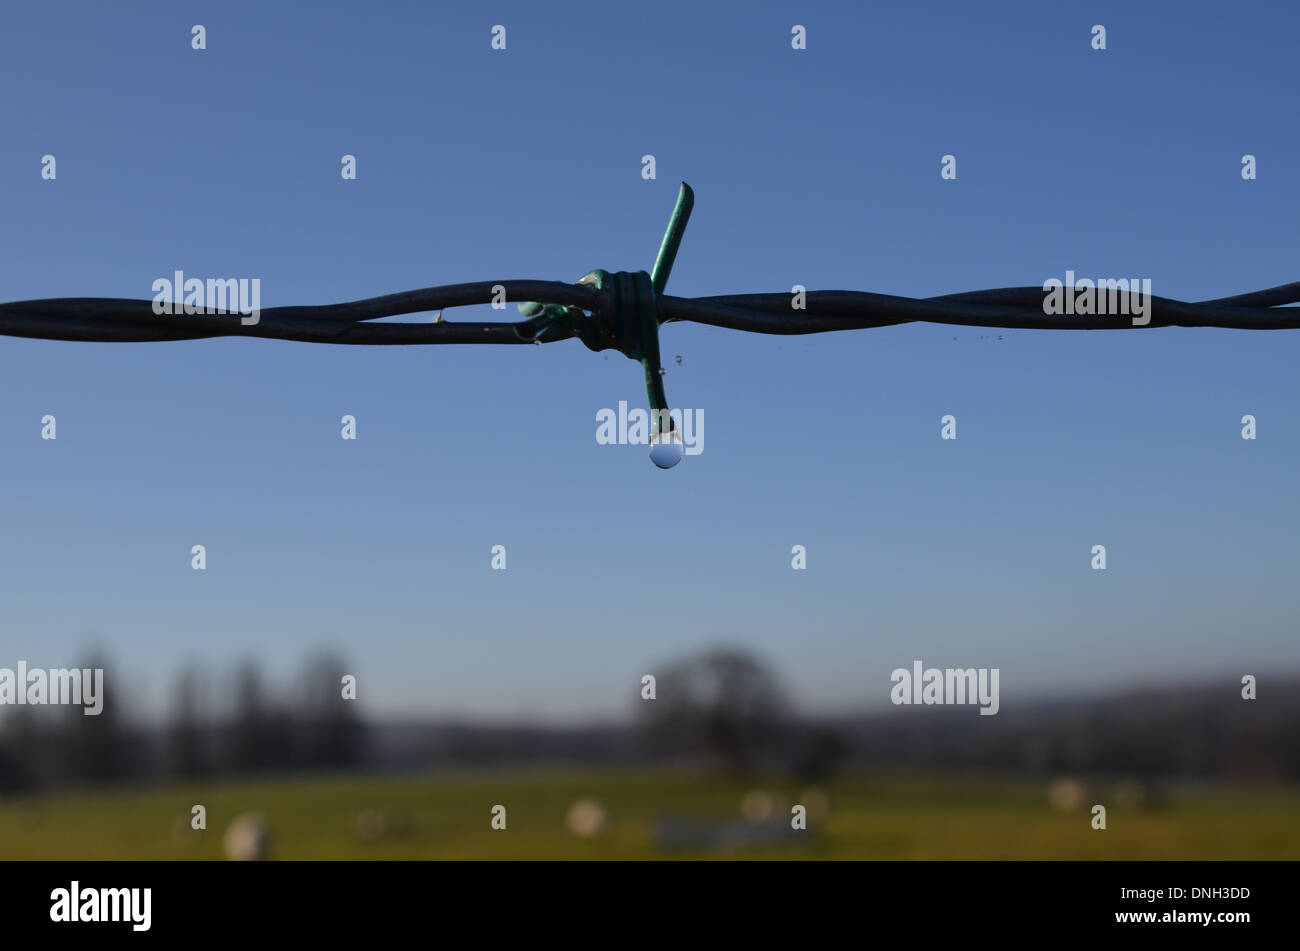 Barbed Wire Water Drop Stock Photos & Barbed Wire Water Drop Stock ...